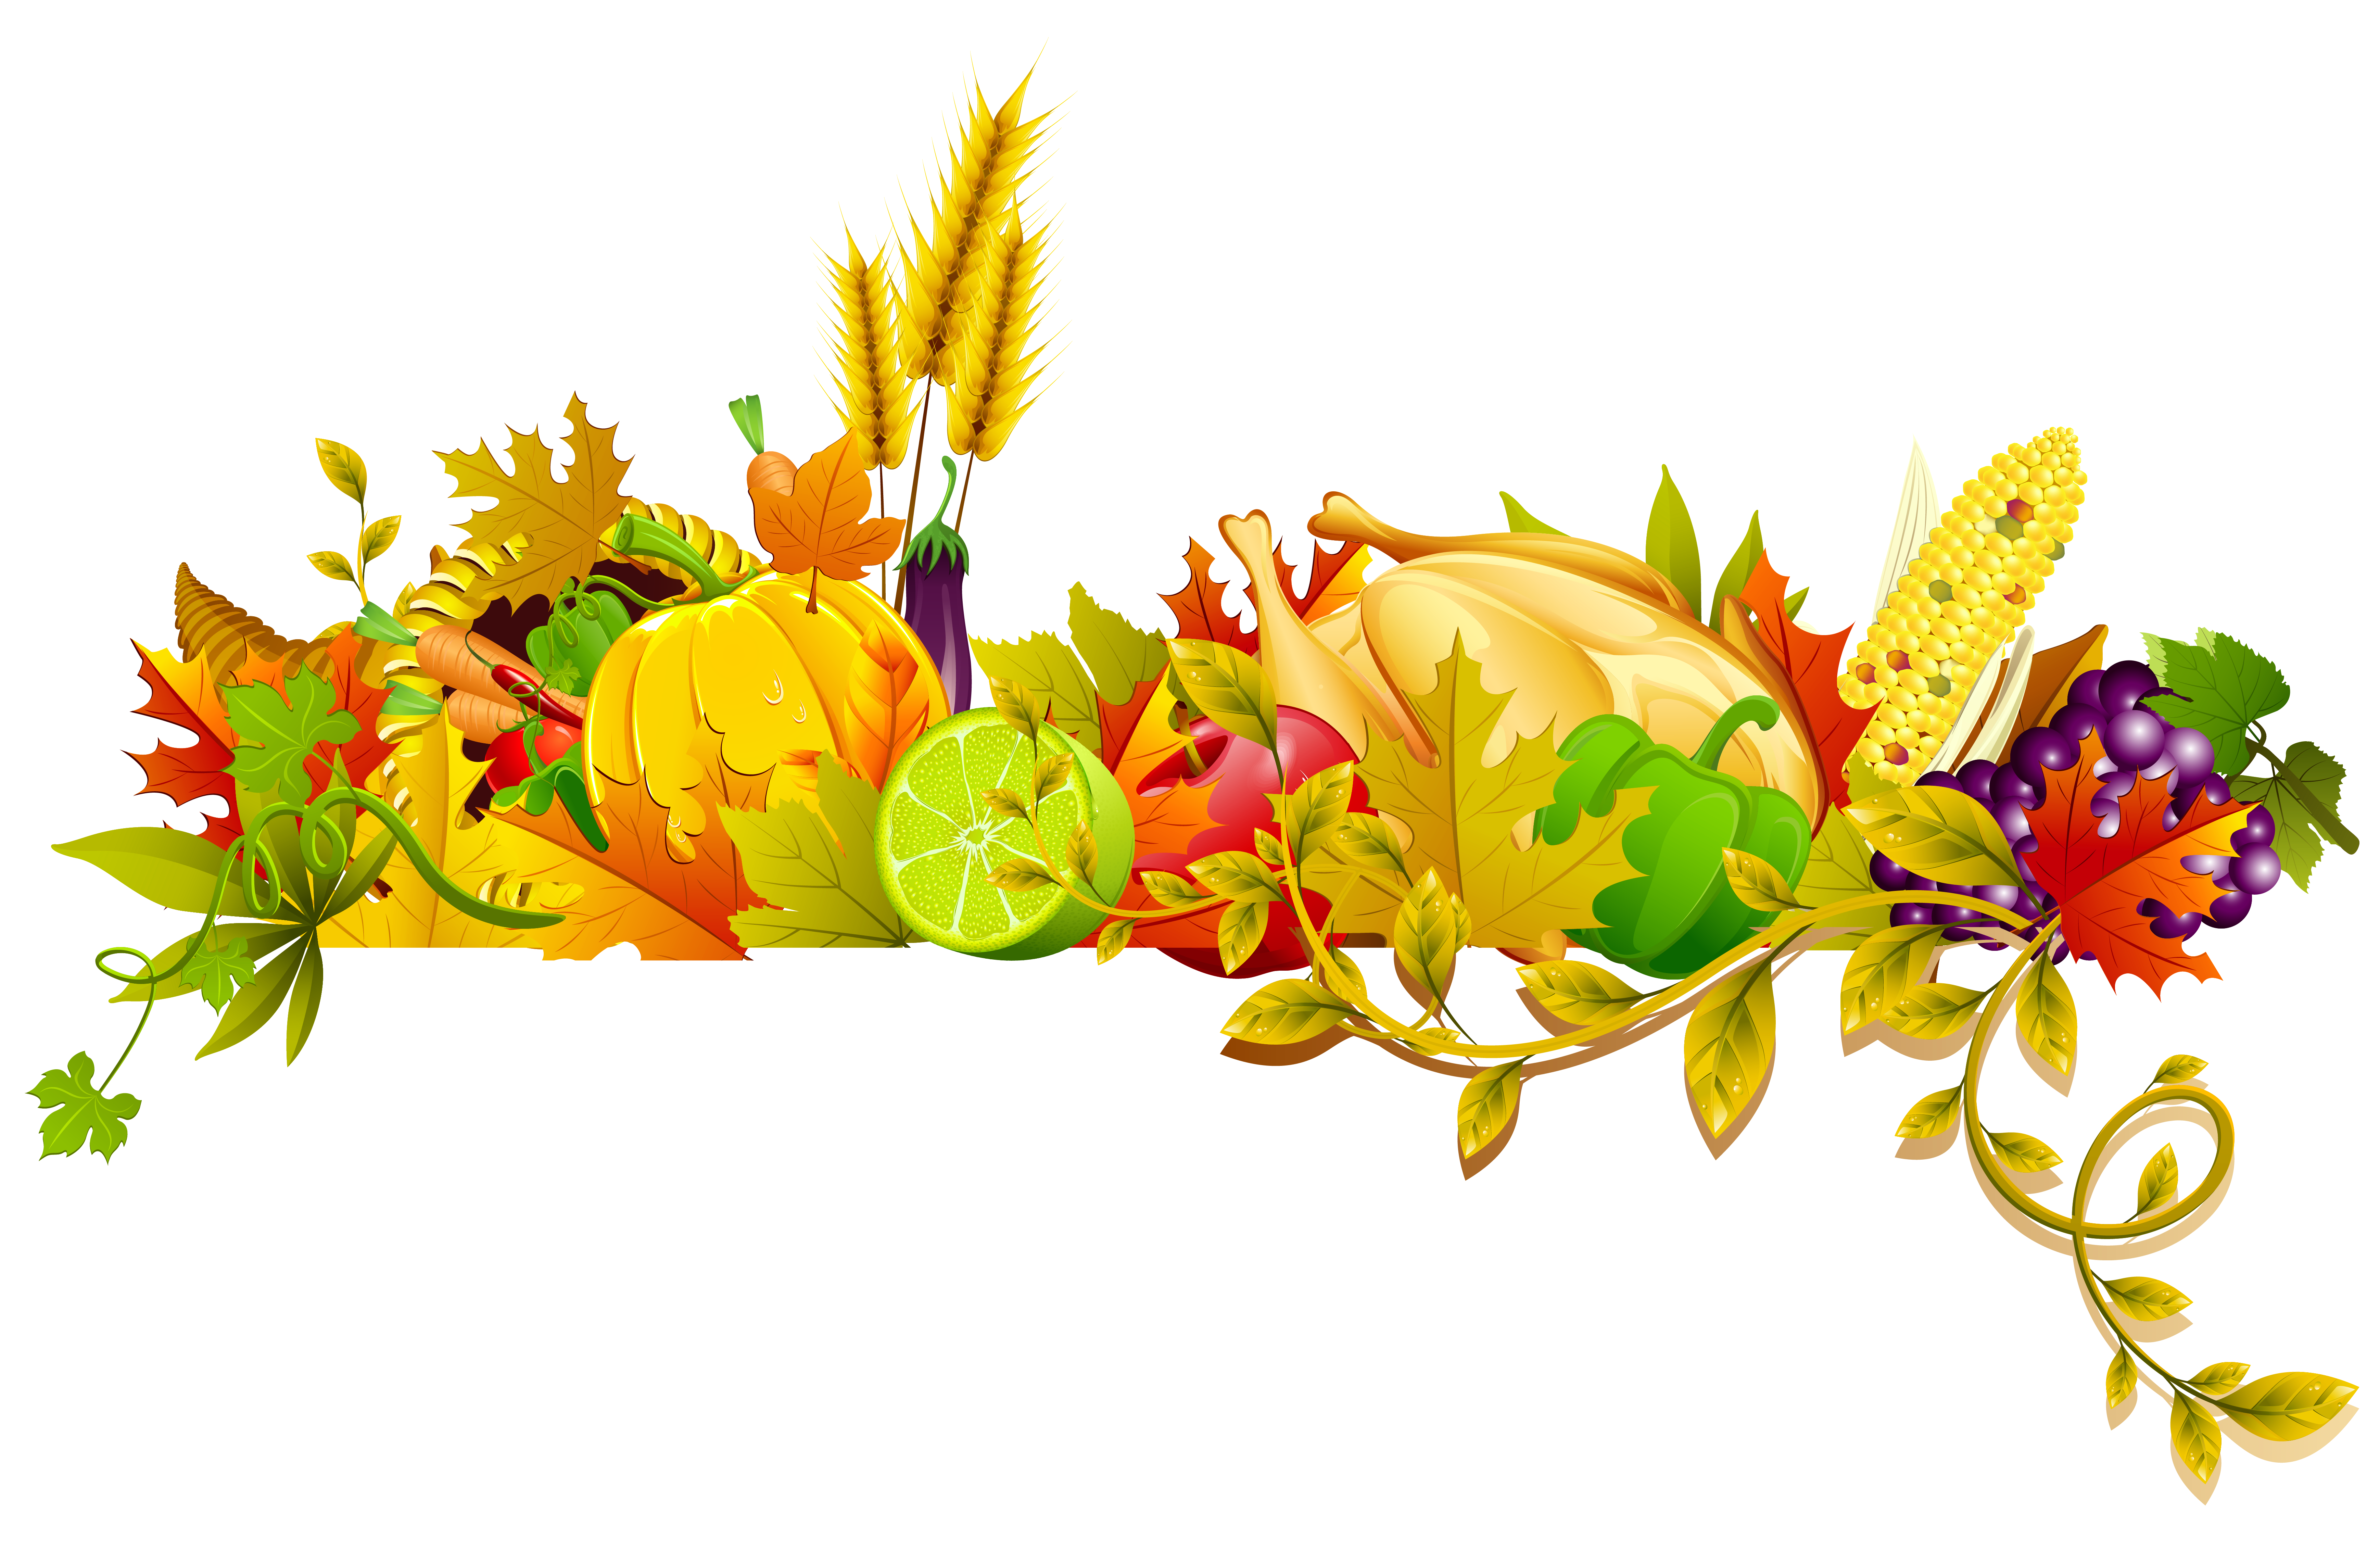 Clipart For Thanksgiving Free .-Clipart for thanksgiving free .-16